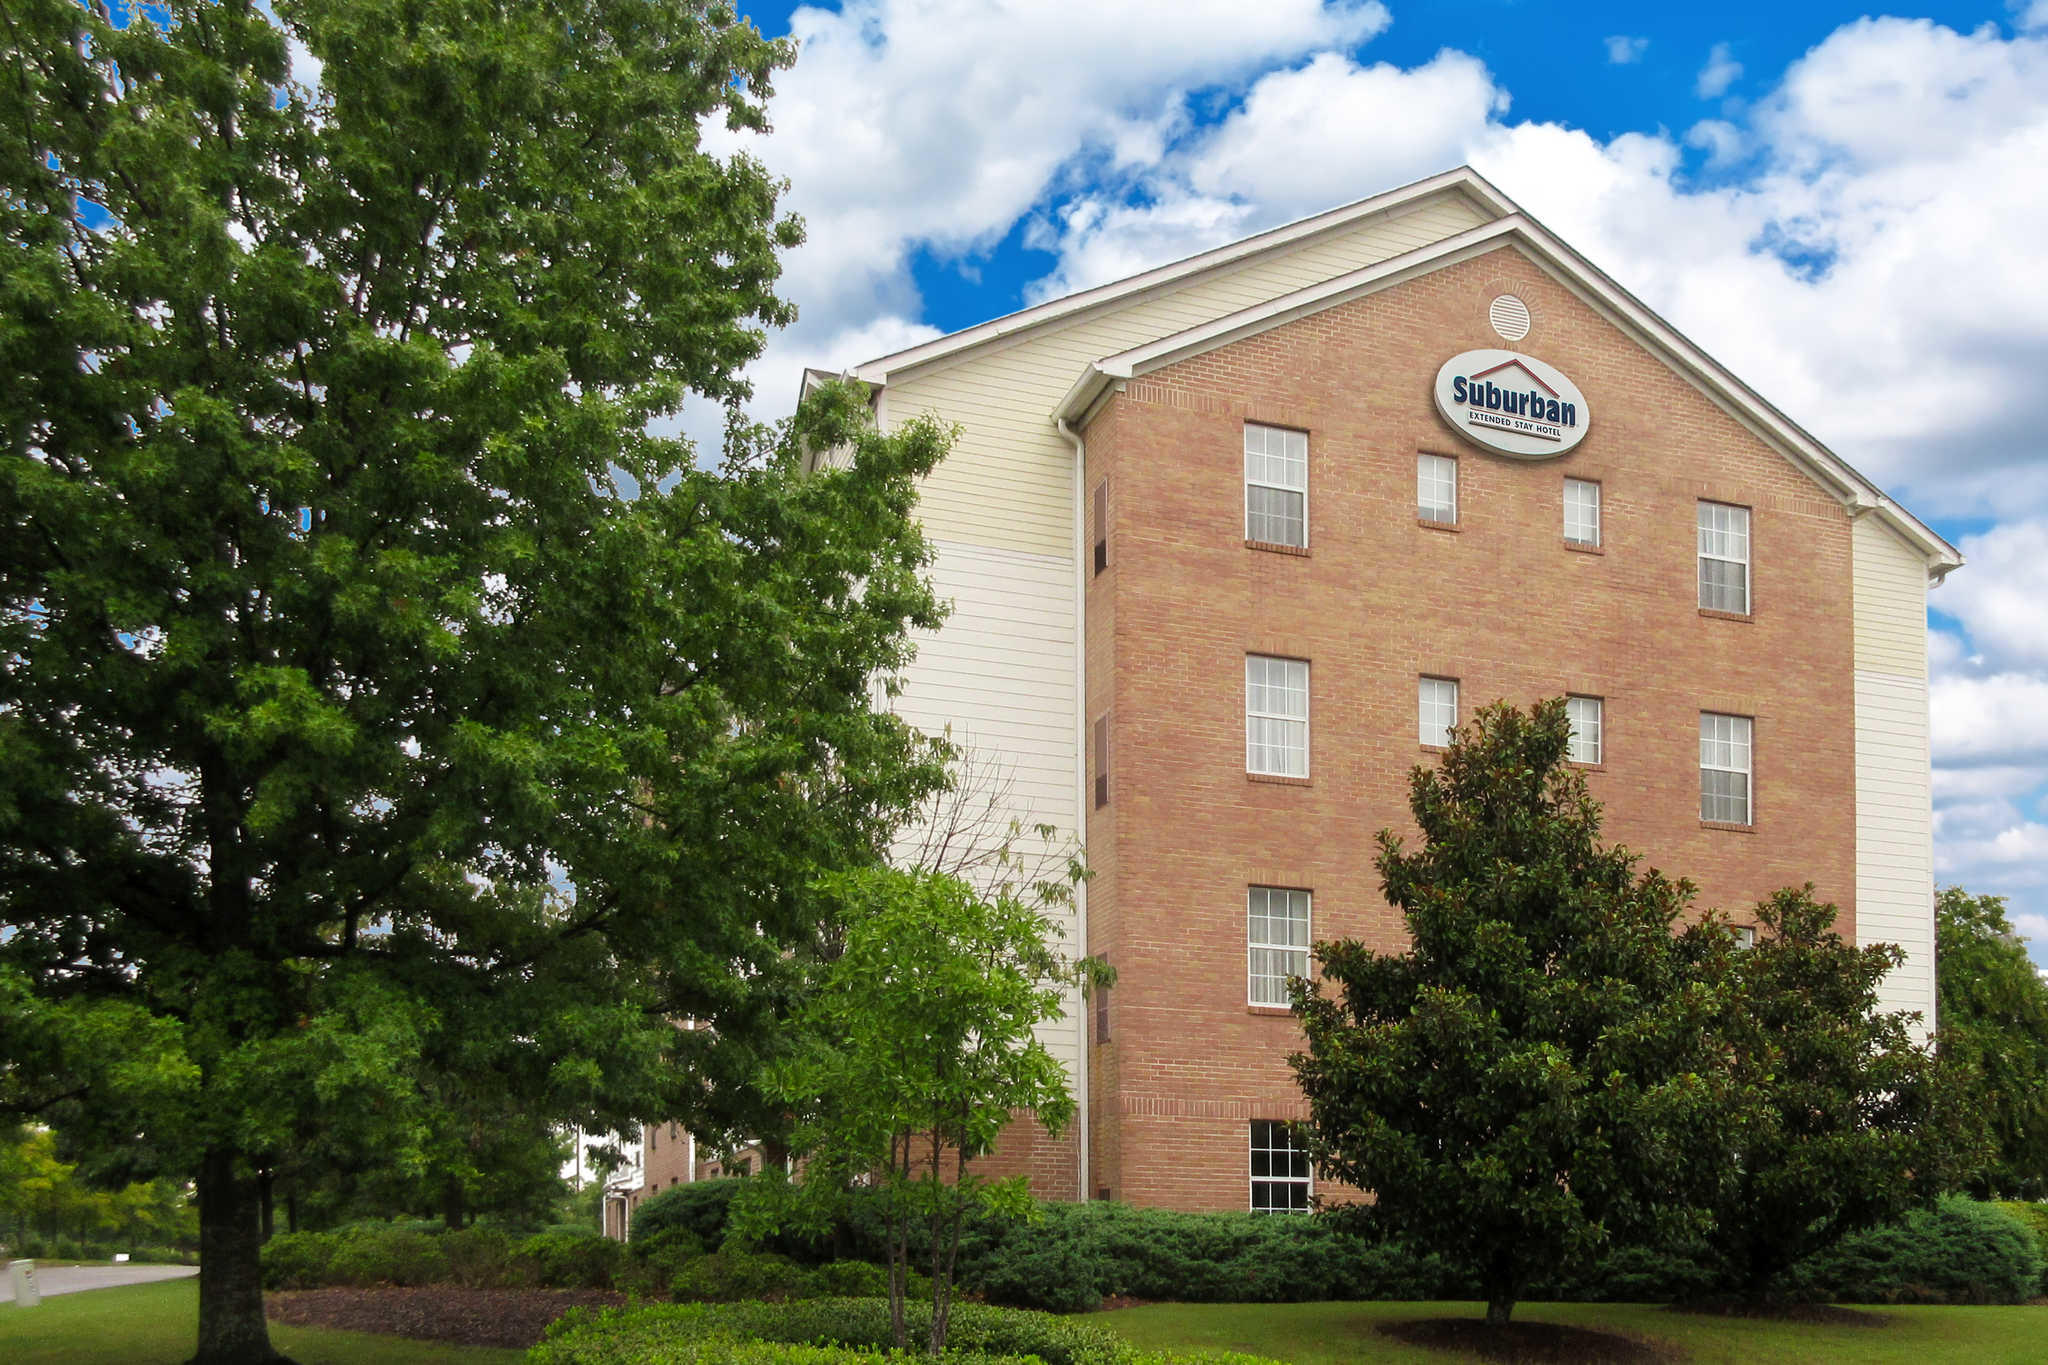 Suburban Extended Stay Hotel image 0